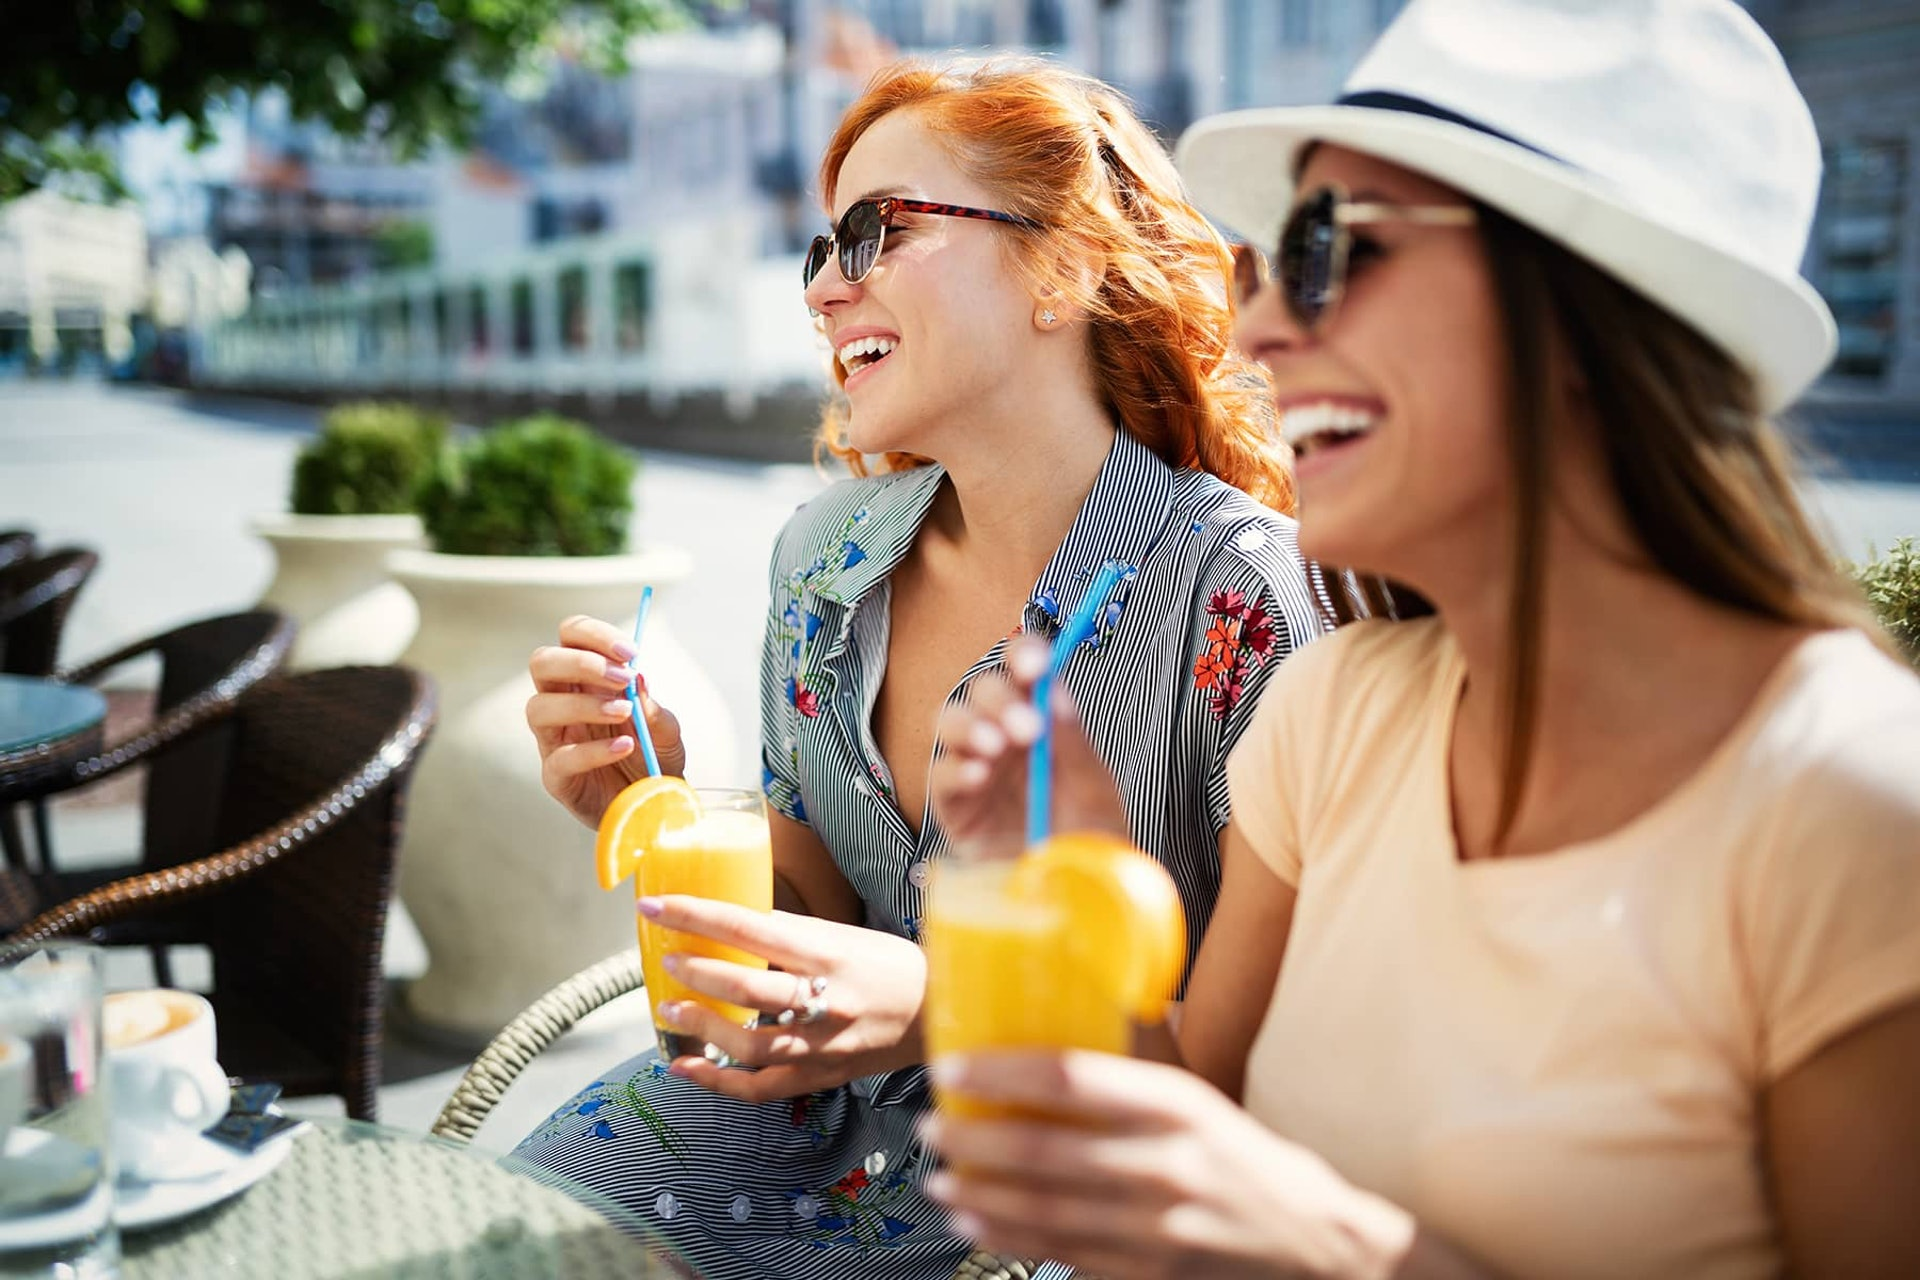 Friends having a great time in cafe. Women smiling and drinking juice and enjoying together